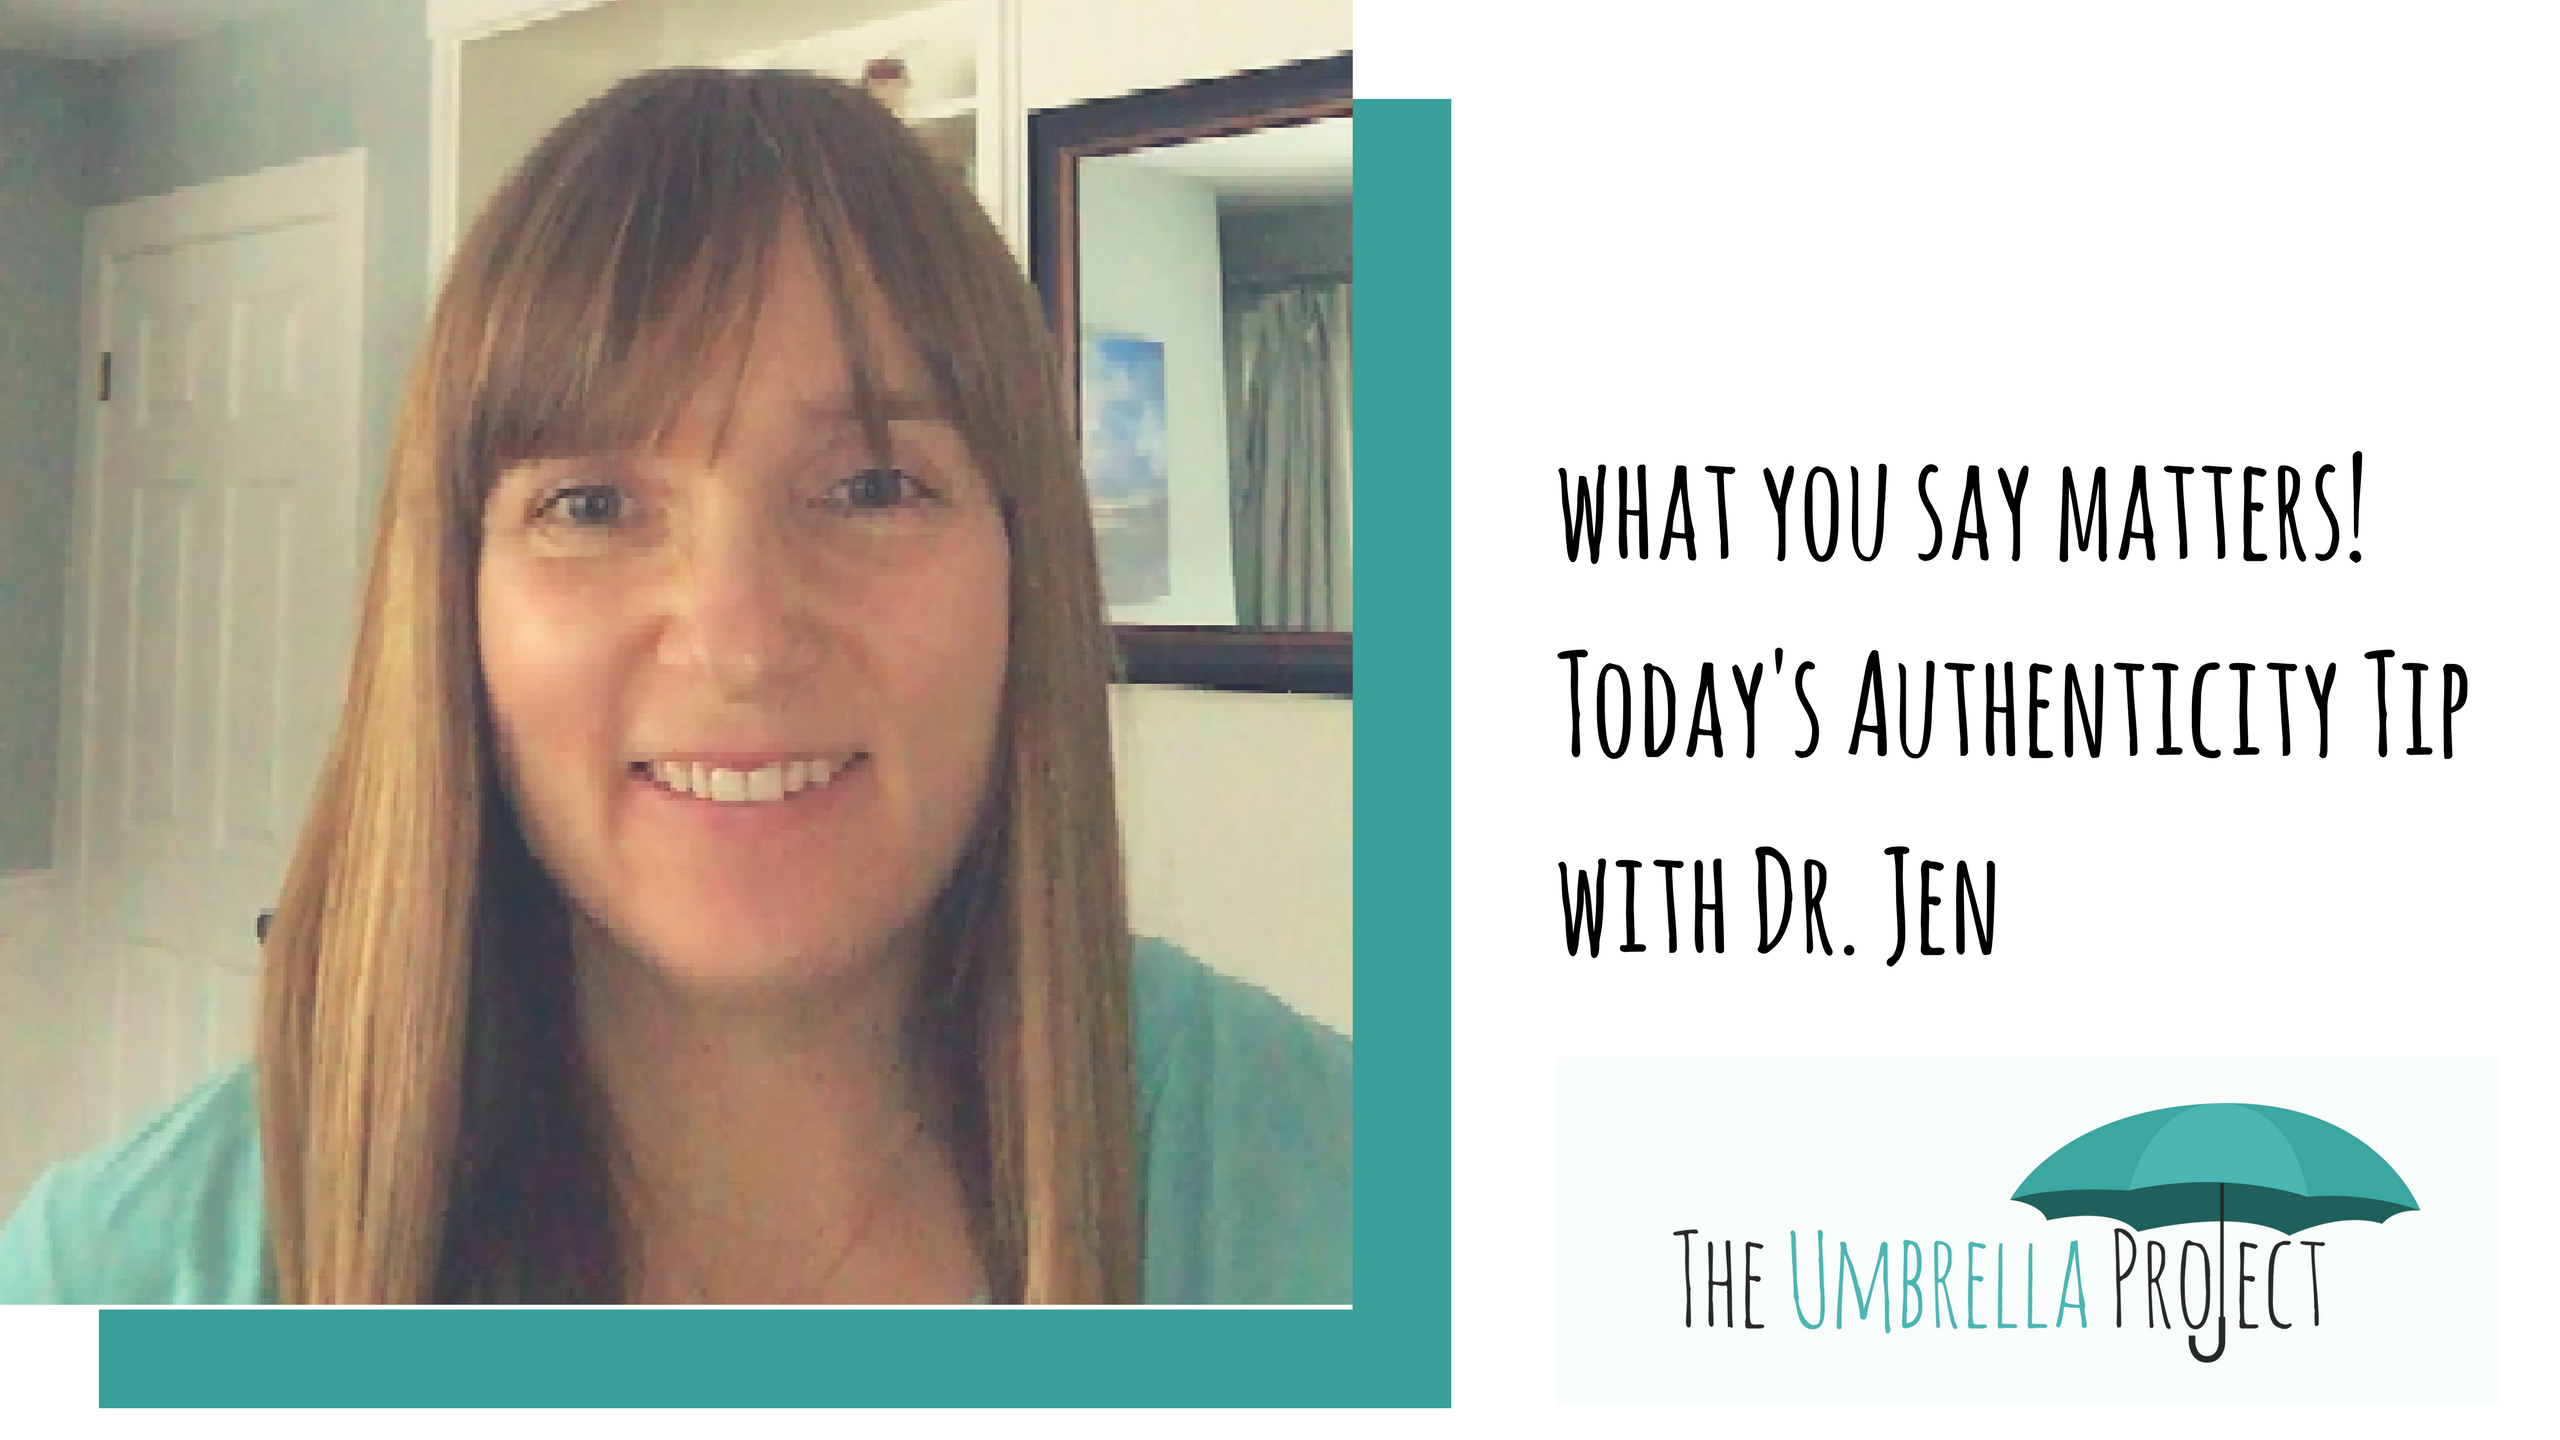 What you say matters! Today's authenticity tip with Dr. Jen